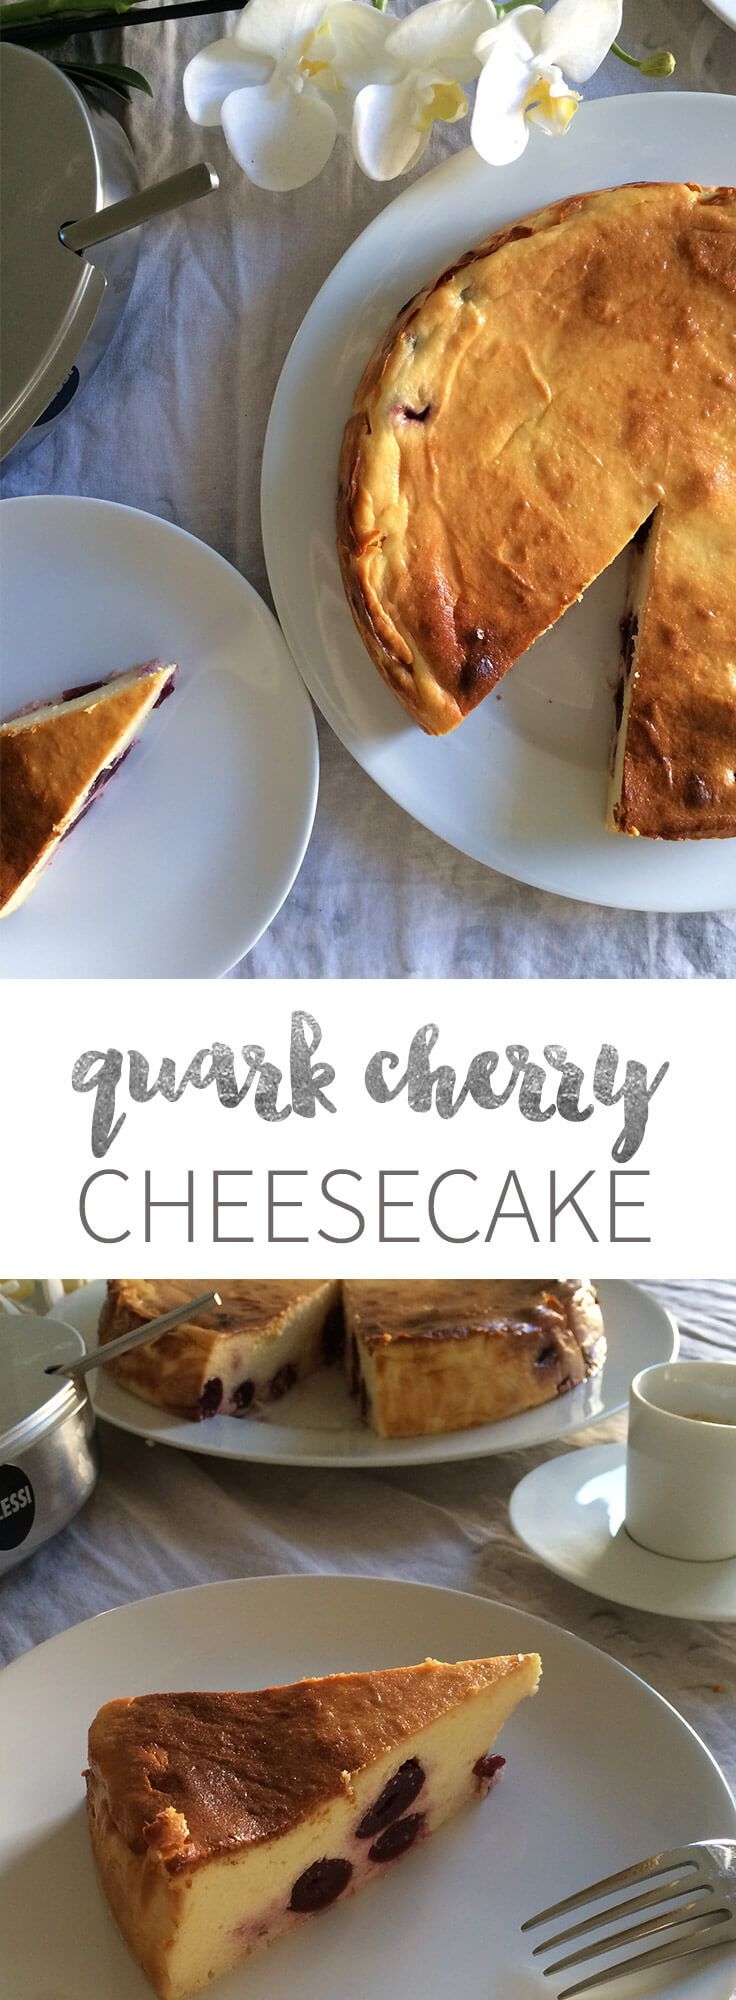 German Cherry Cheesecake has no crust and is made with quark and cherries.